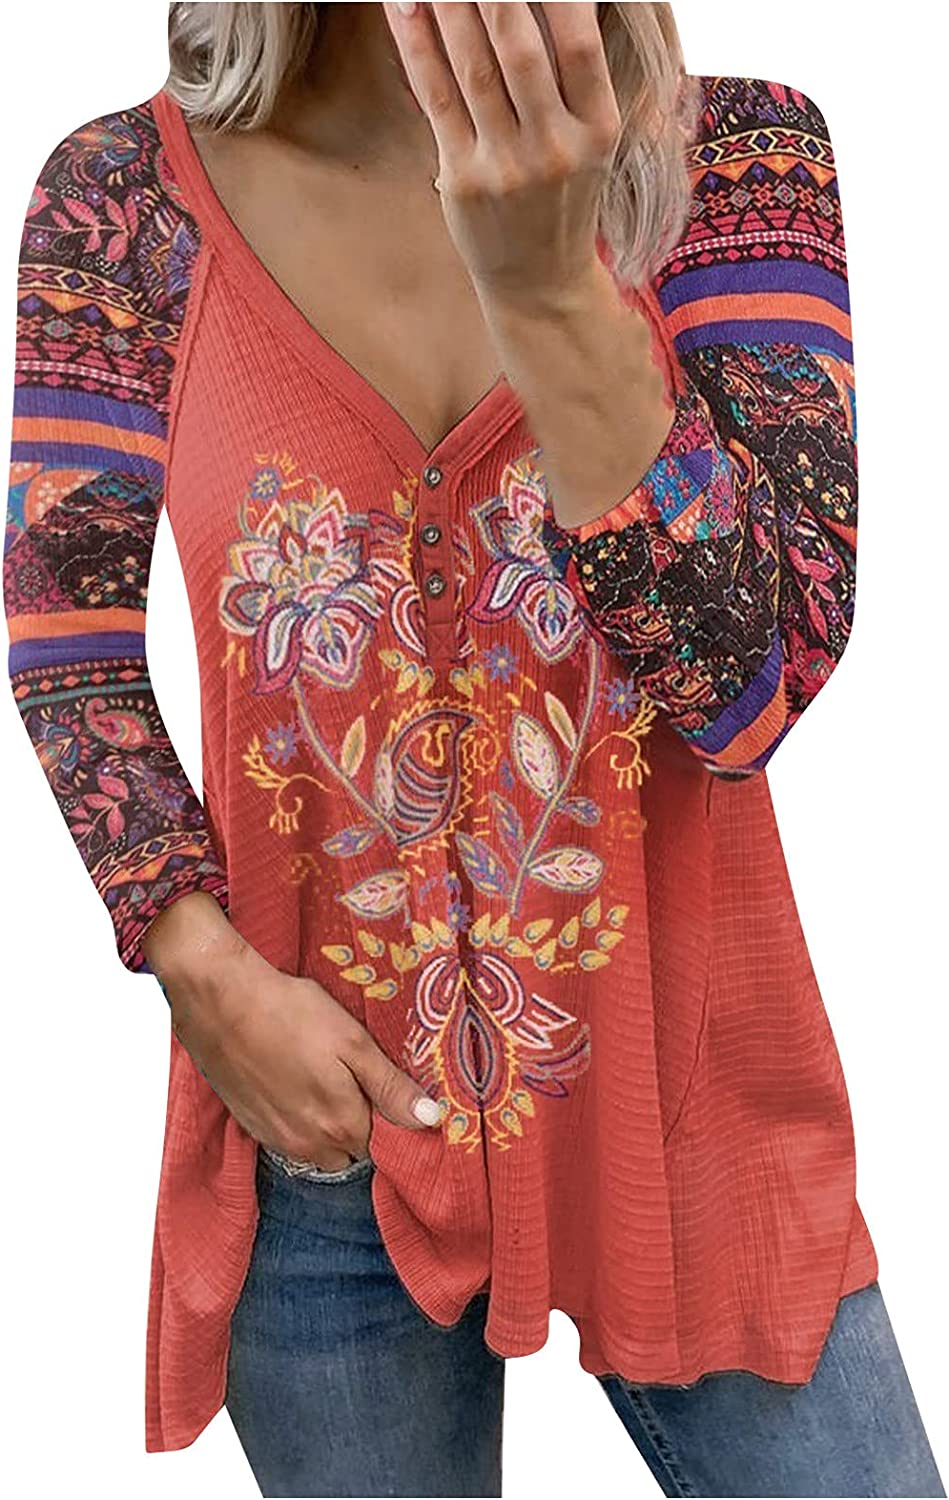 TIMIFIS Womens Long Sleeve Tops for Fall Fashion Print Tunic Tops Sexy V Neck Shirts Loose Fit Pullover